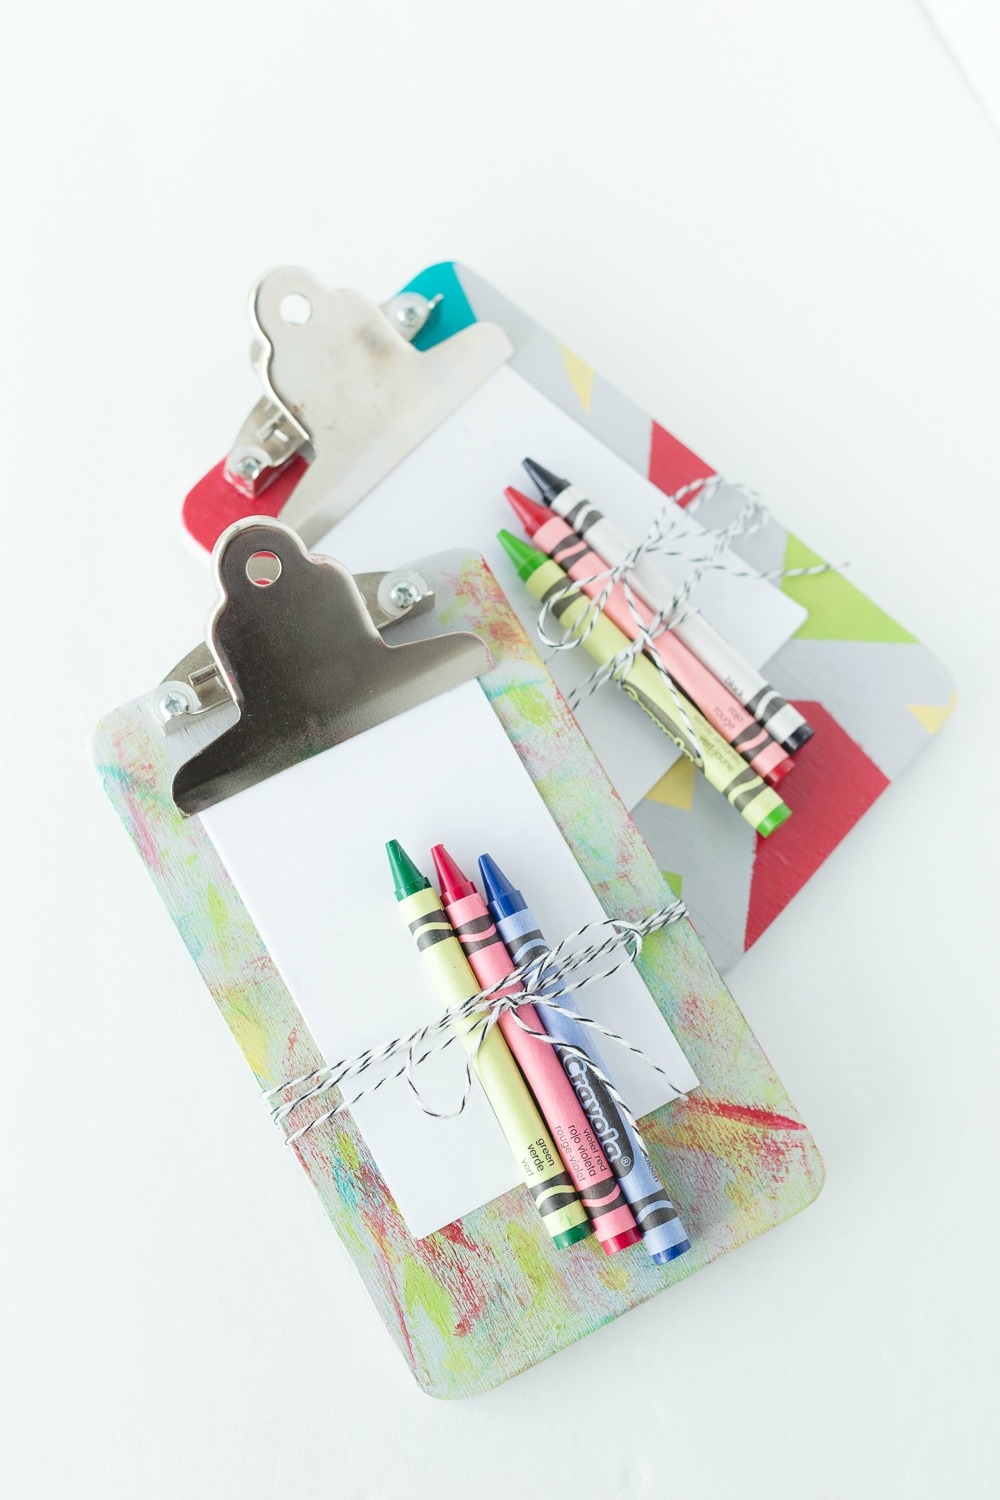 On-the-Go Mini Clipboards: keep your kids busy with their own paper and crayons while on the go. These mini clipboards are perfect for a day full of errands, restaurants and more!